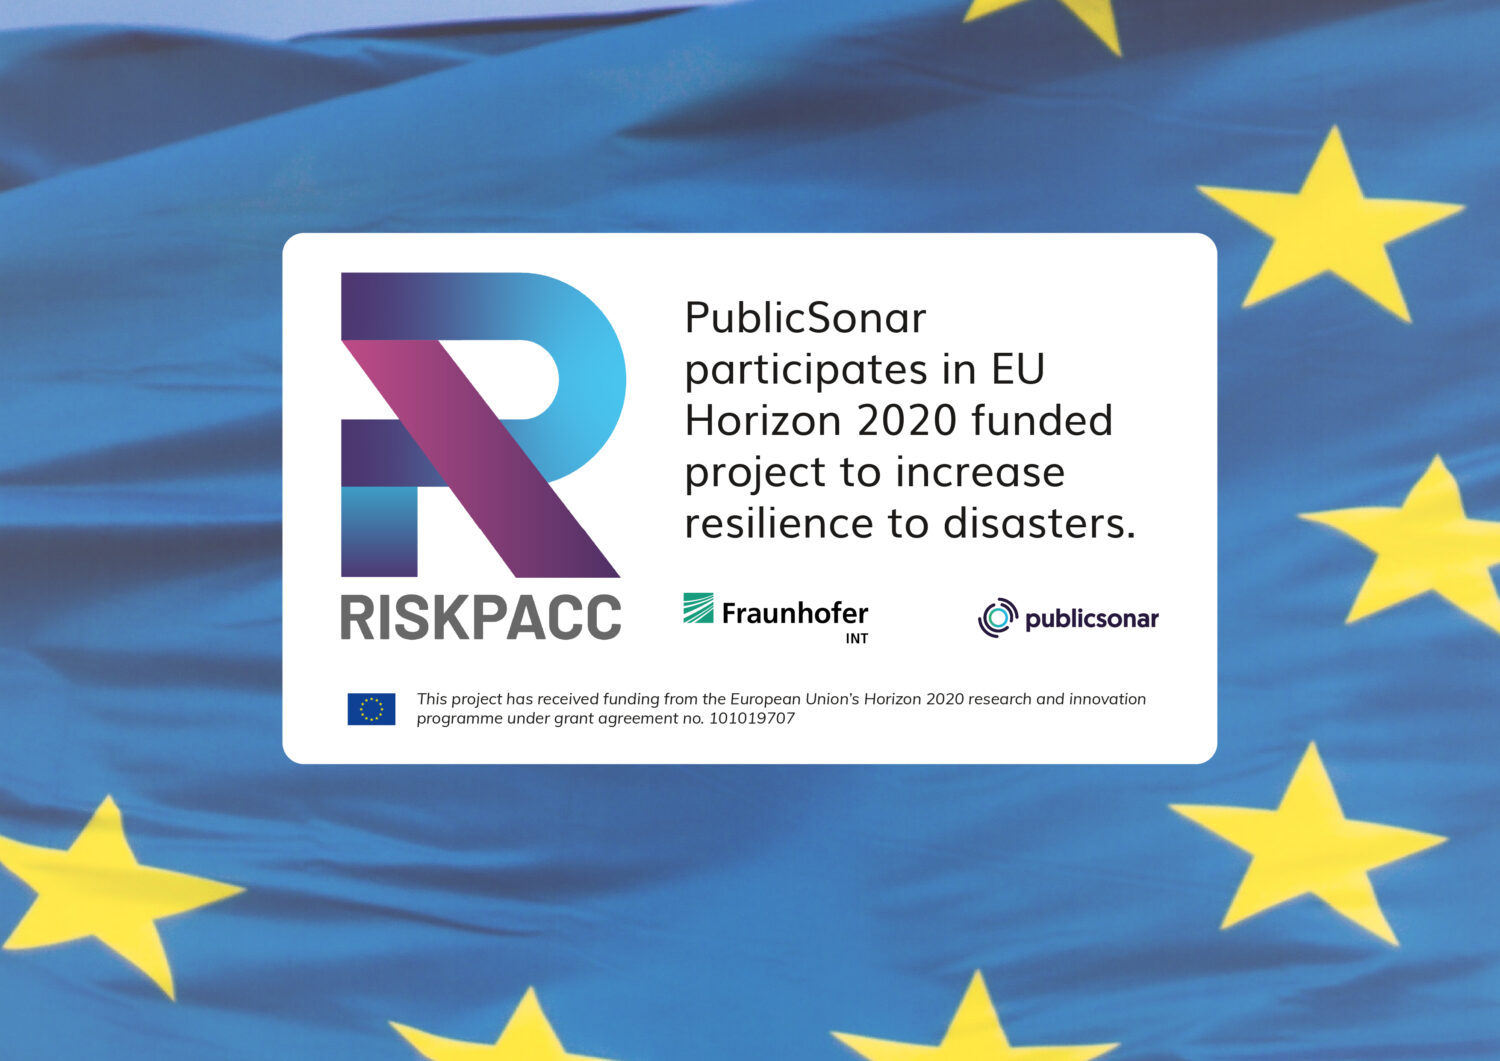 RiskPacc disaster resilience